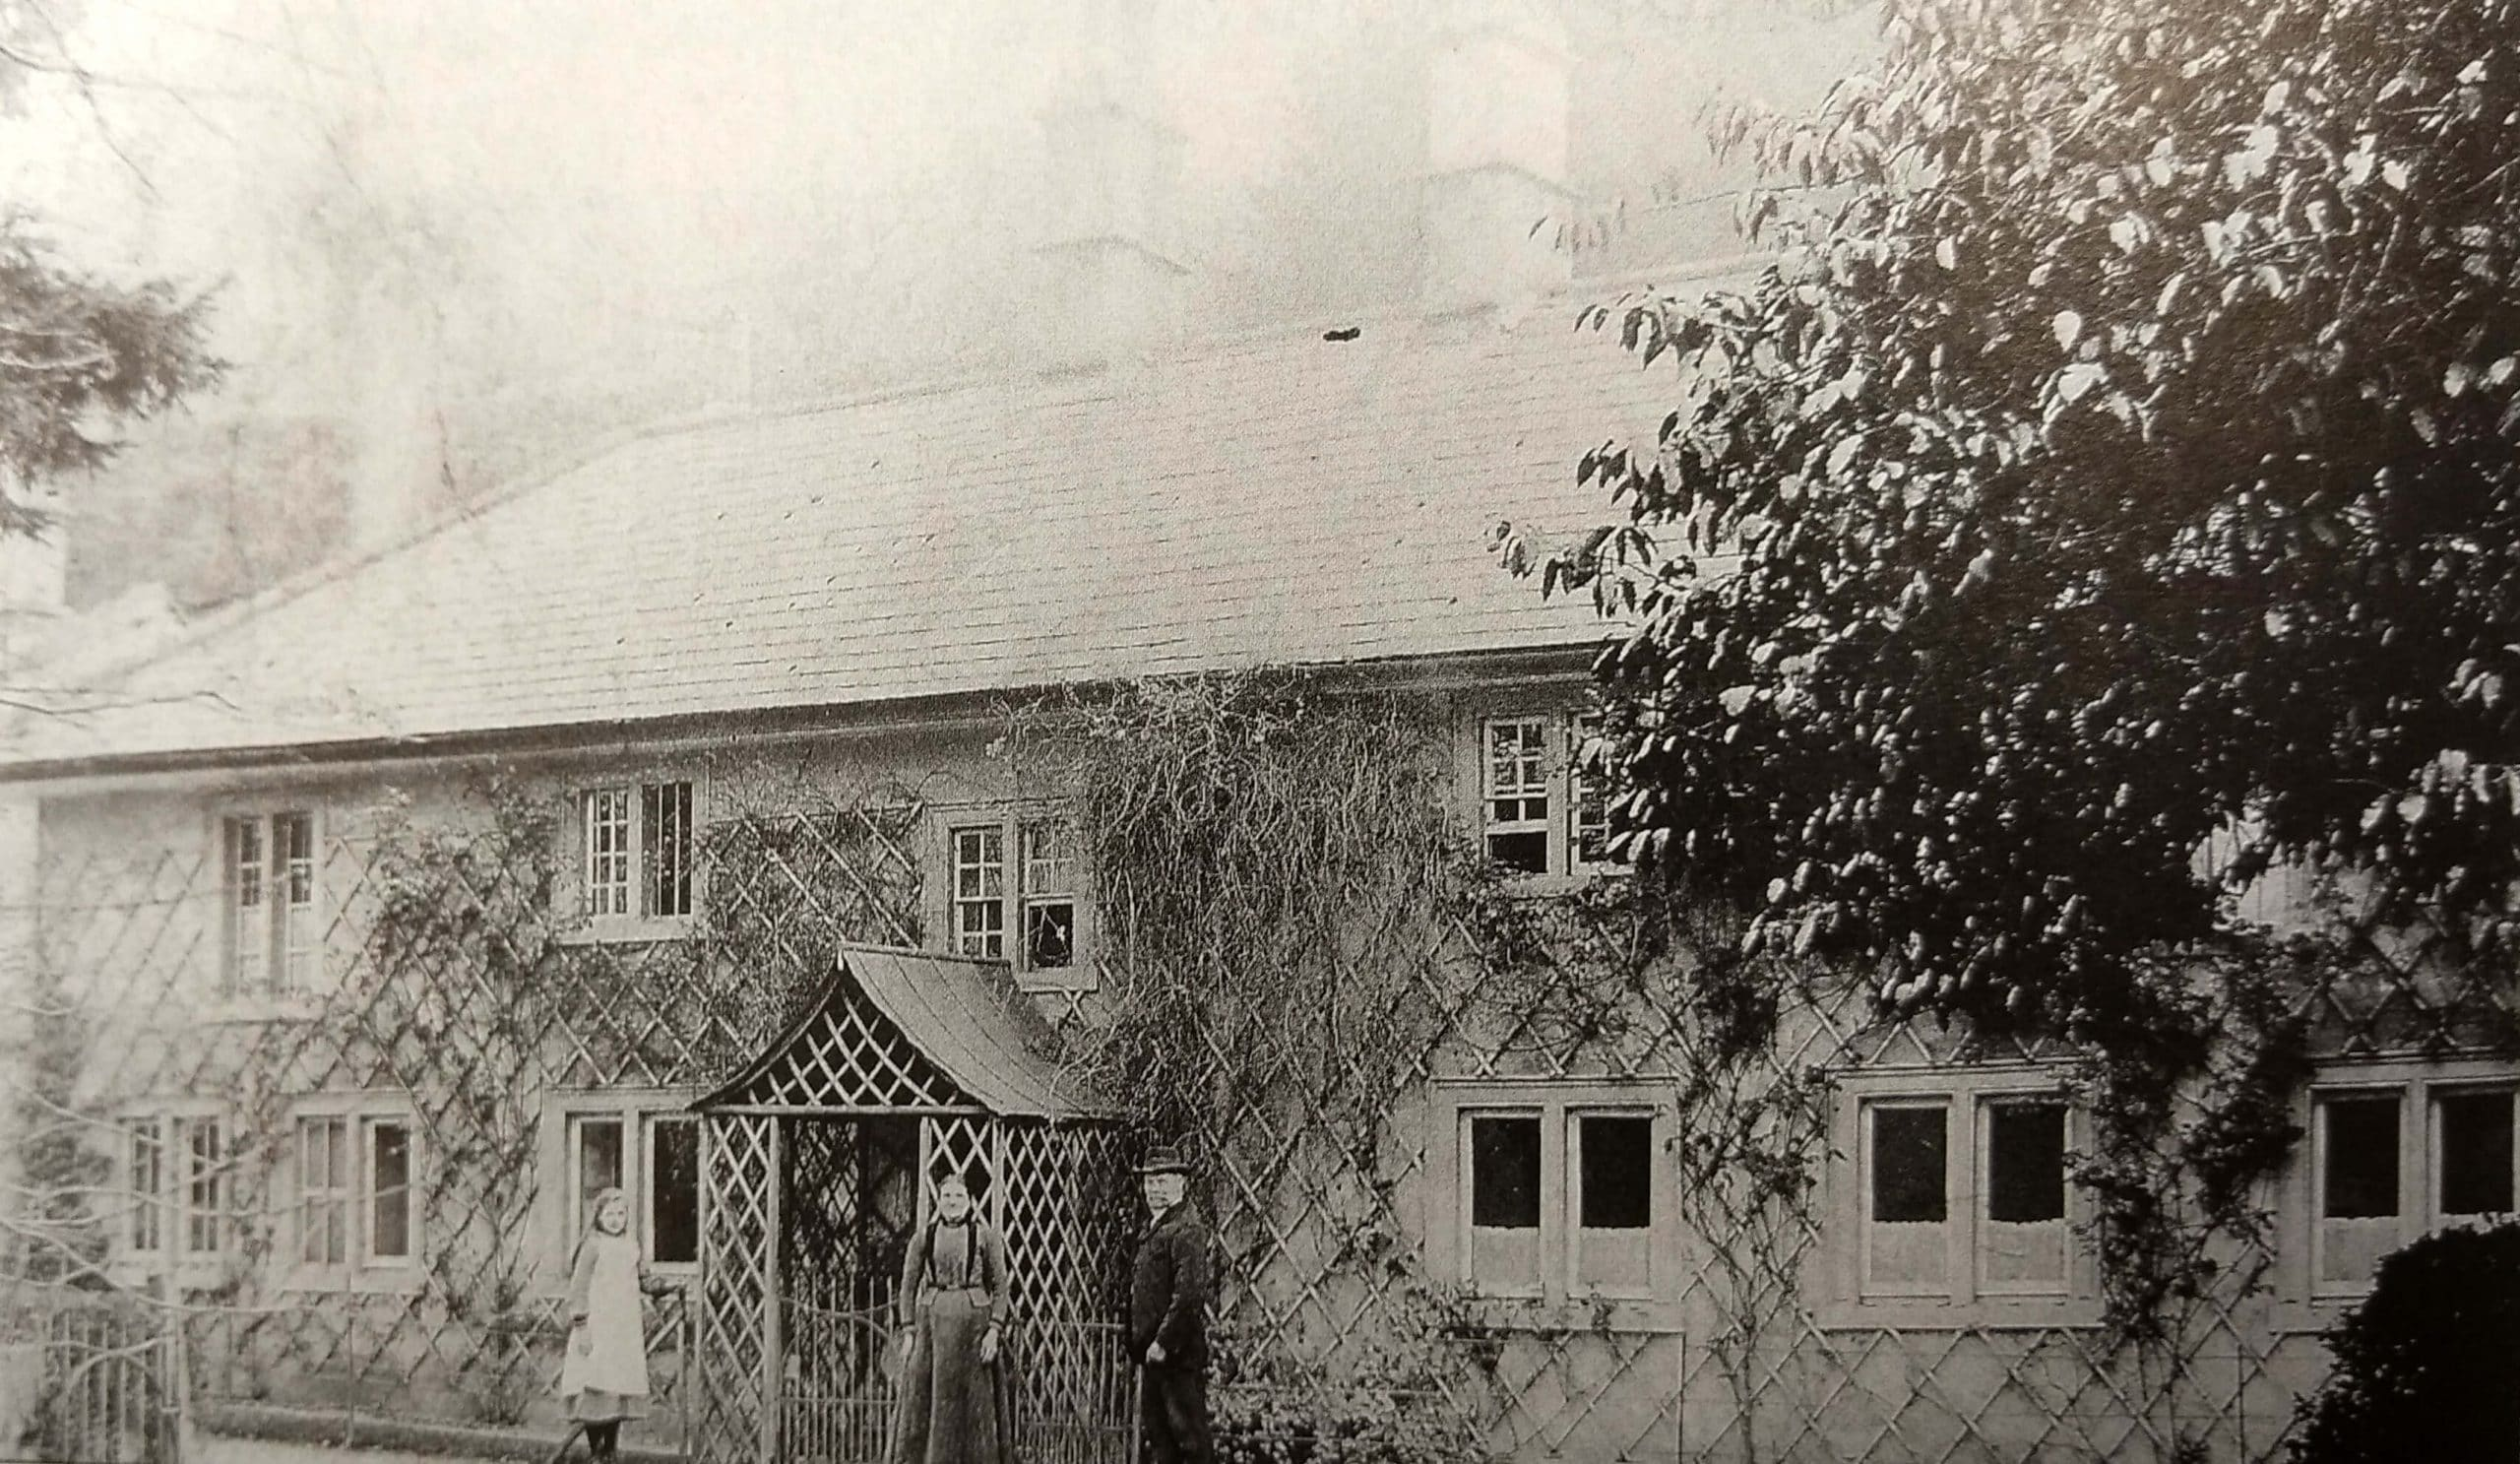 Waterhouse cottage, Monkton Combe about 1906